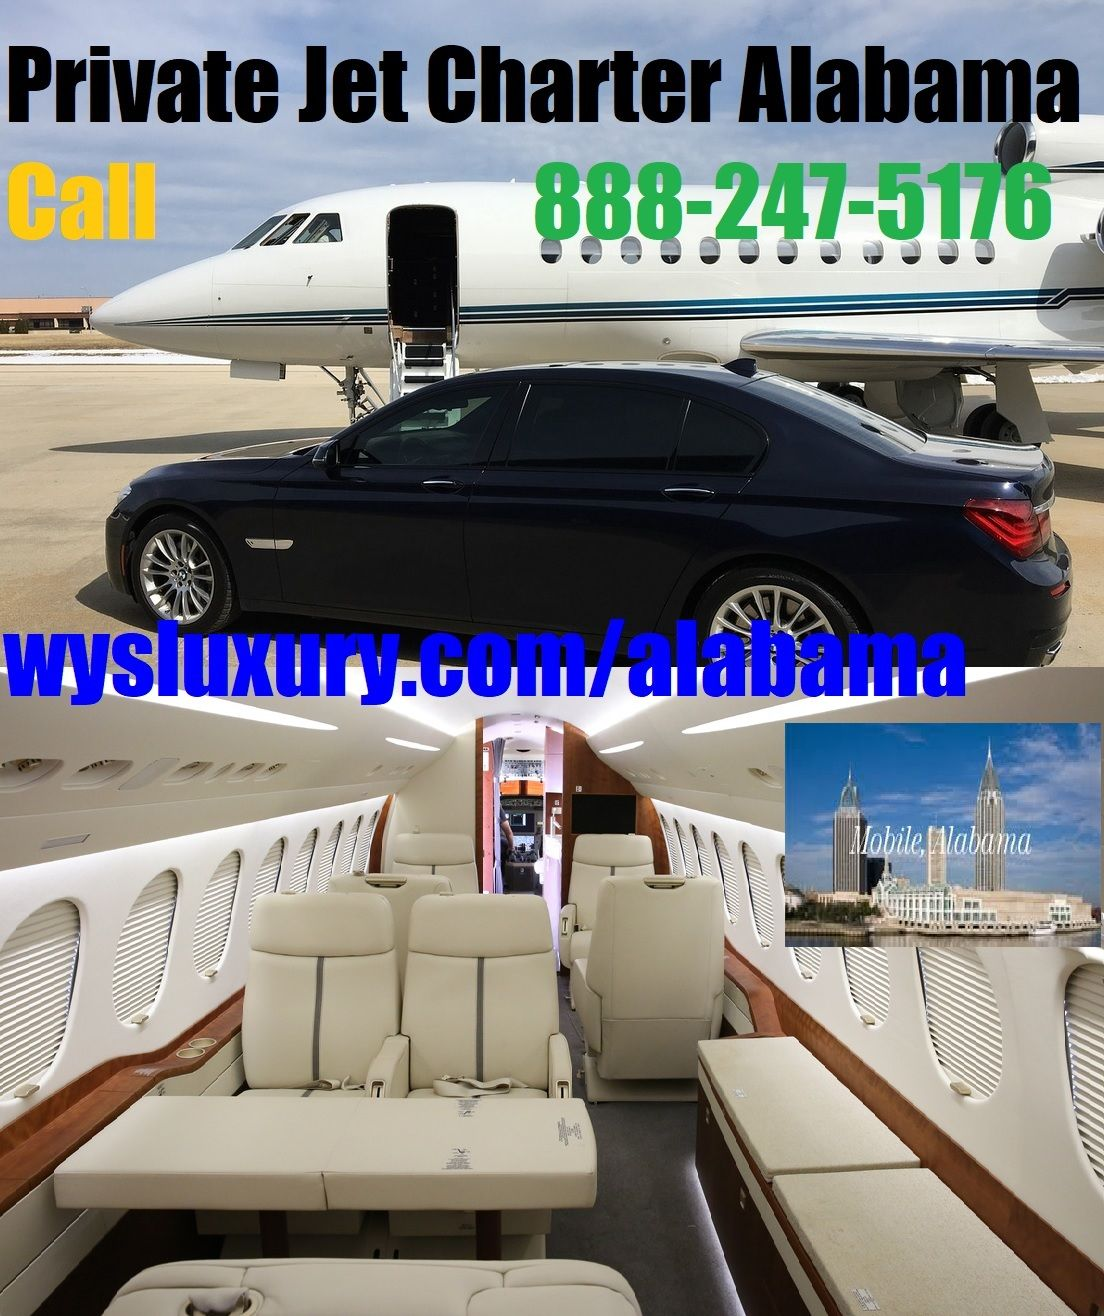 Private Jet Quote Classy Executive Travel Private Jet Charter Mobile Dothan Enterprise